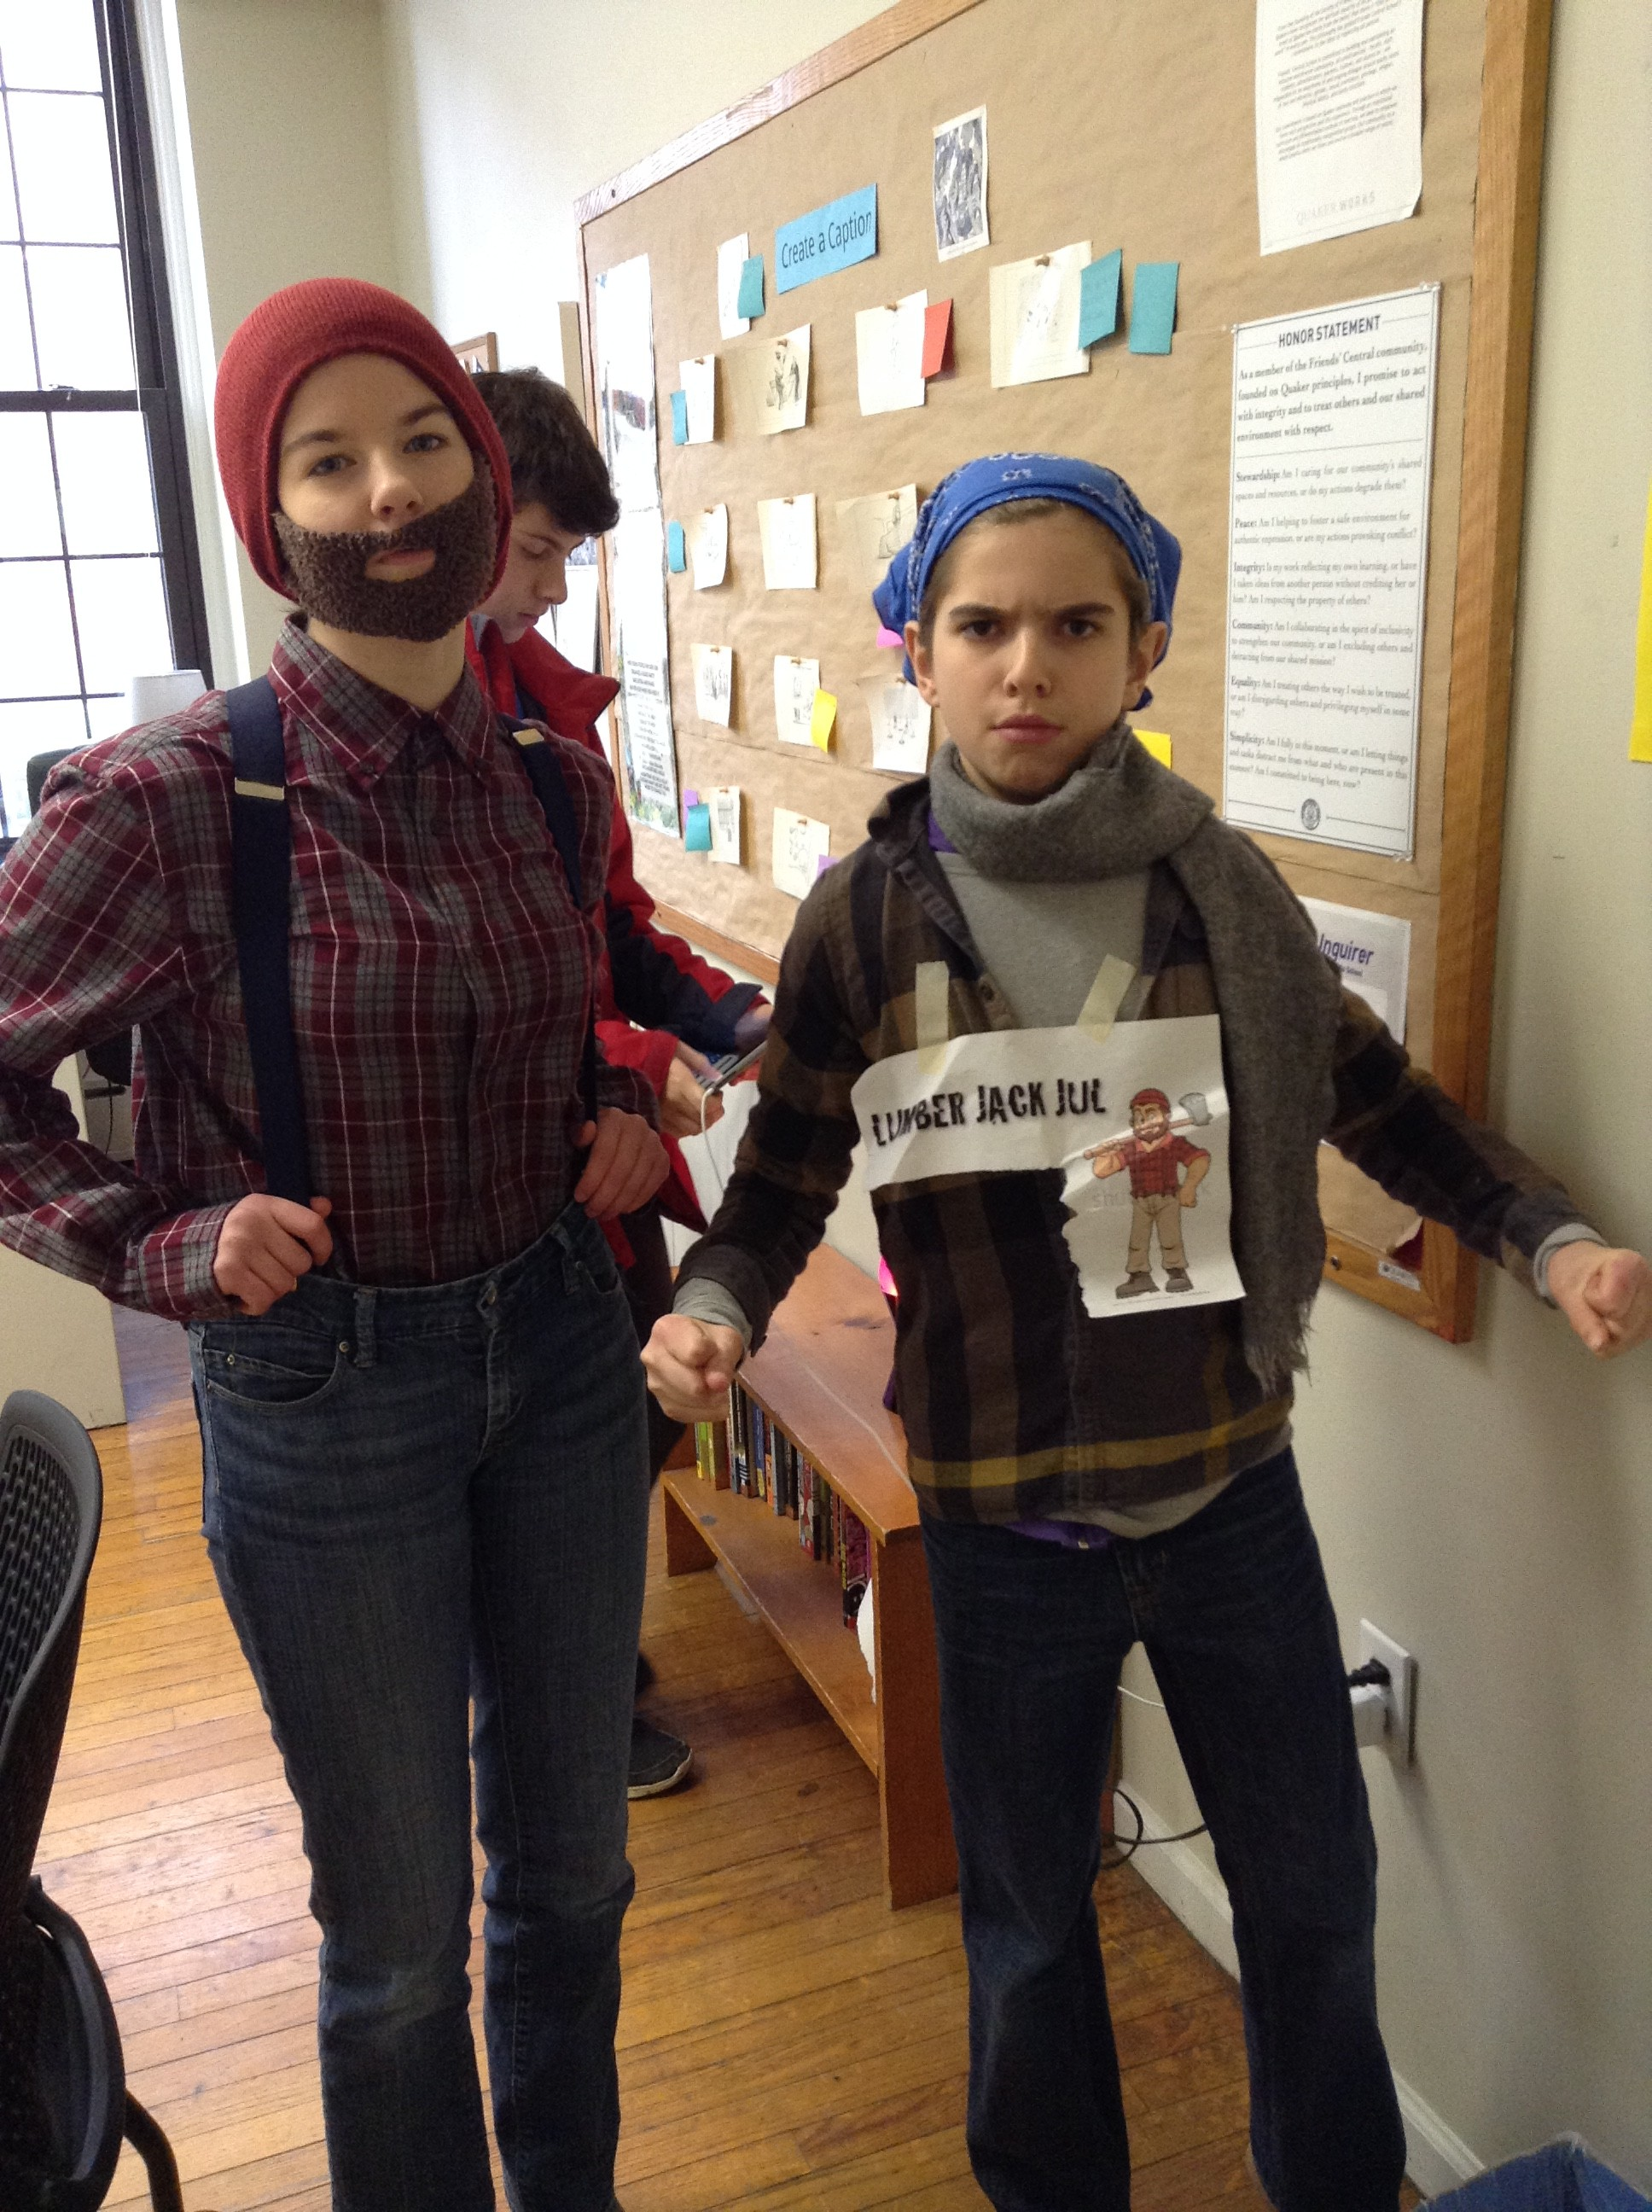 Dorothy '20 and Julian '20 enjoy lumberjack day by posing for the camera!